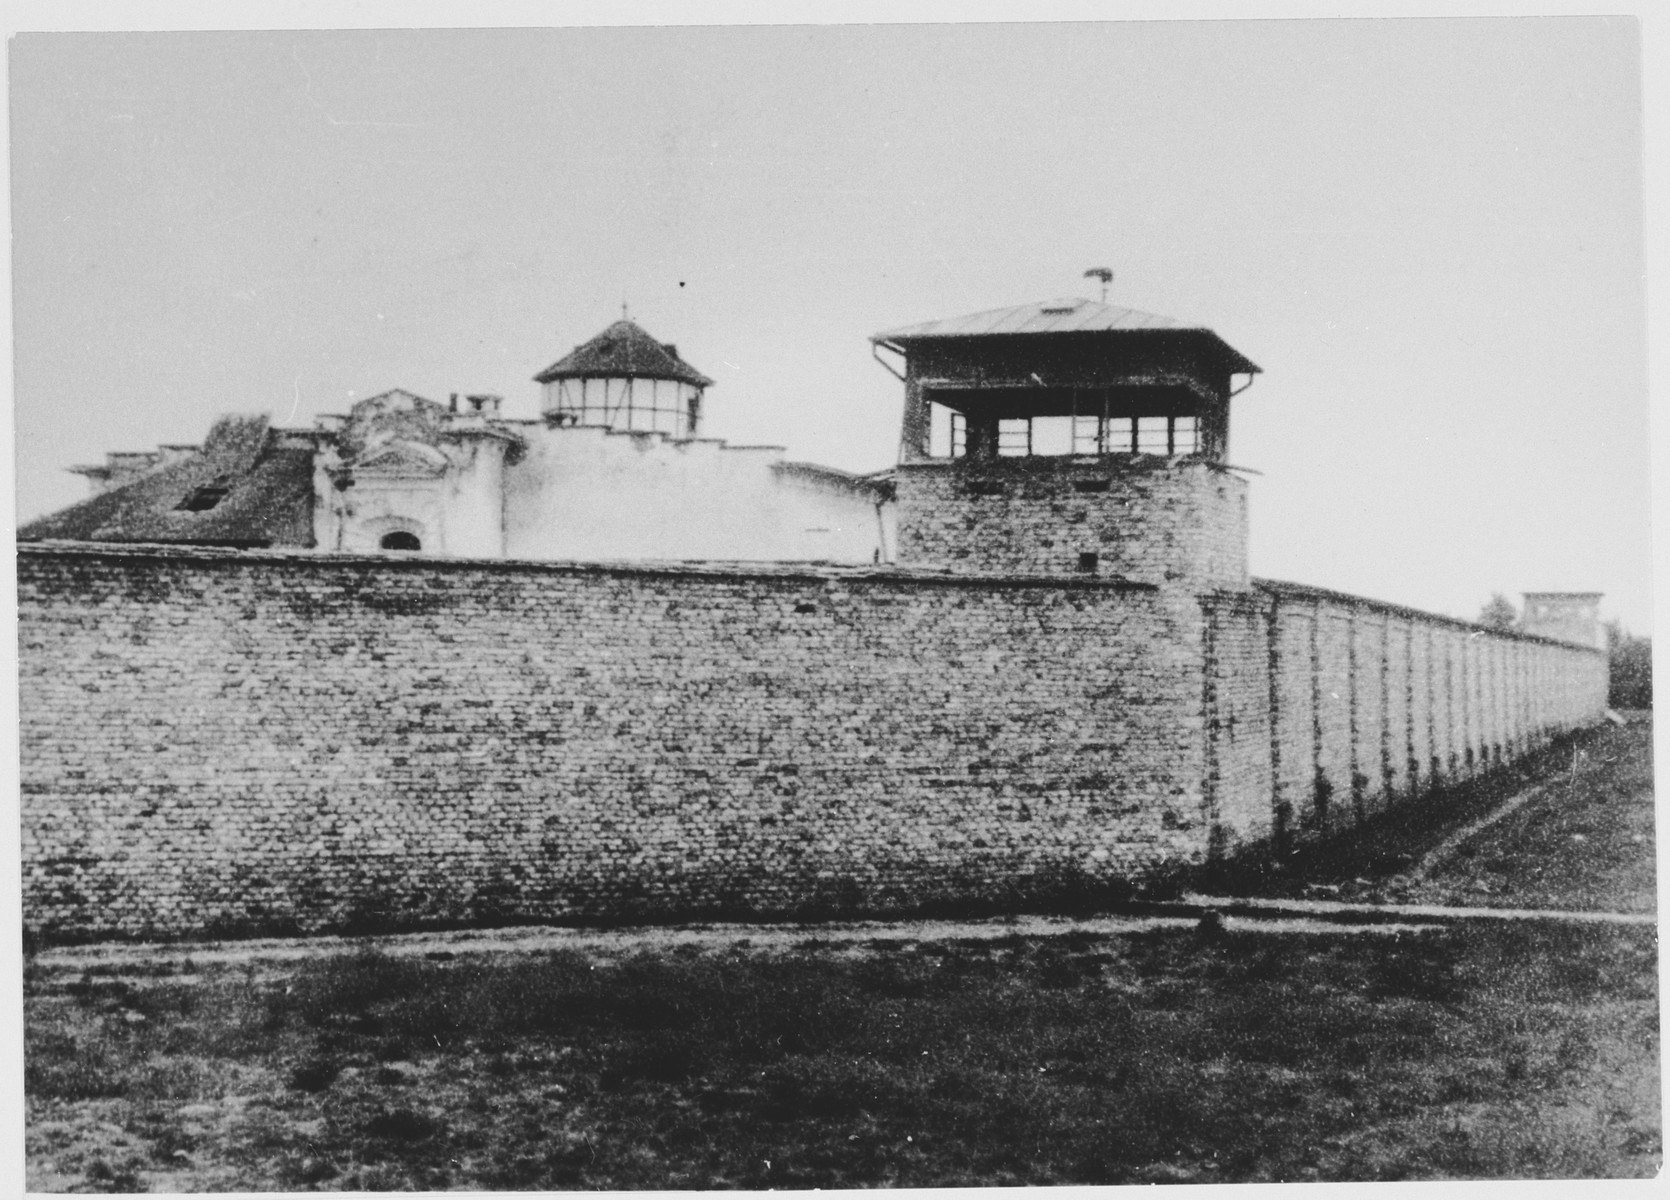 View of the Stara Gradiska concentration camp.  Pictured is the eastern and southern wall of the camp and corner watch tower.